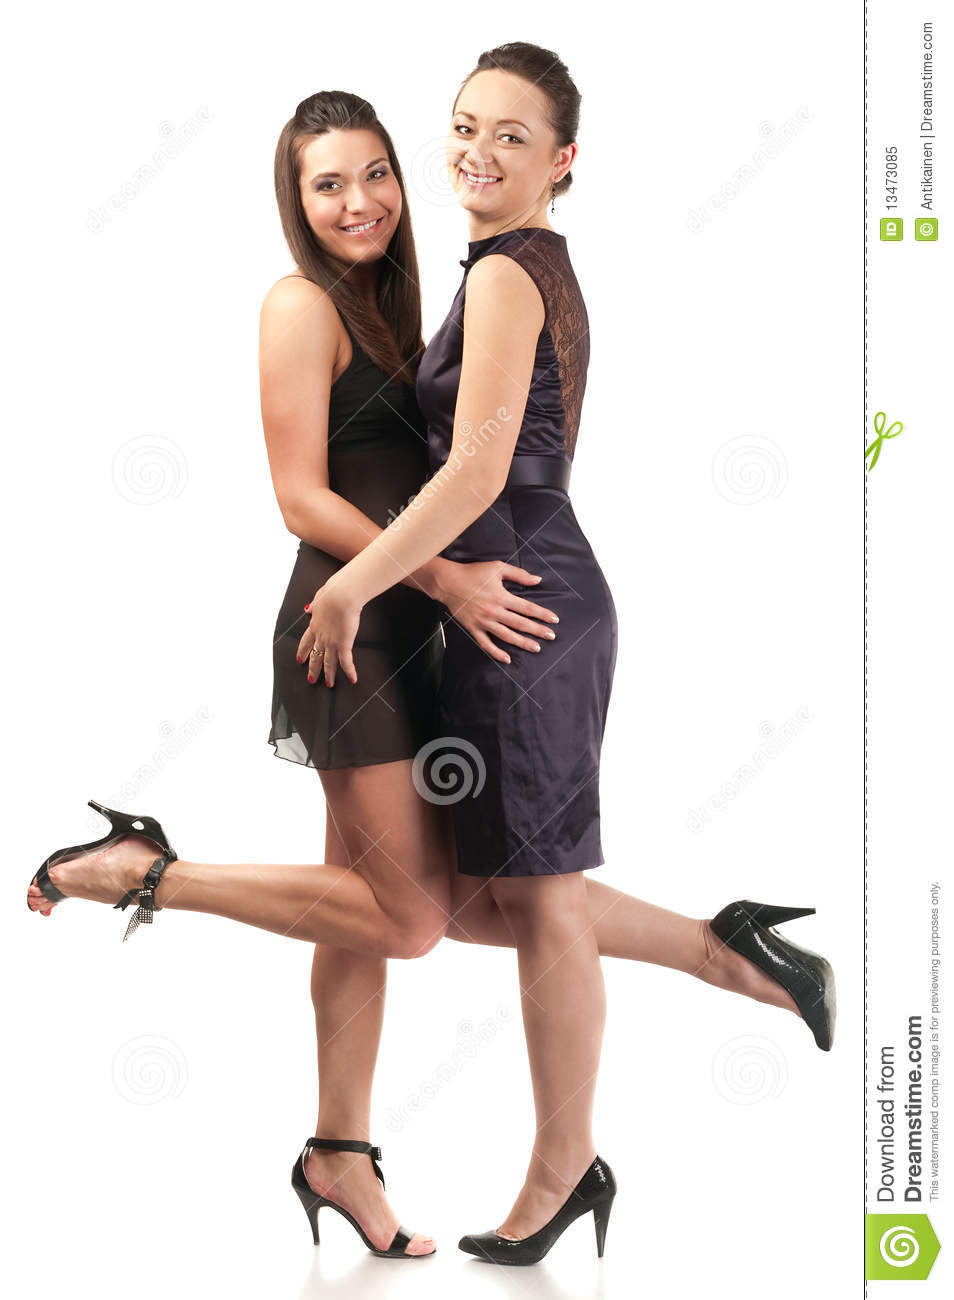 Two Sexy Women Together Royalty Free Stock Photo Image